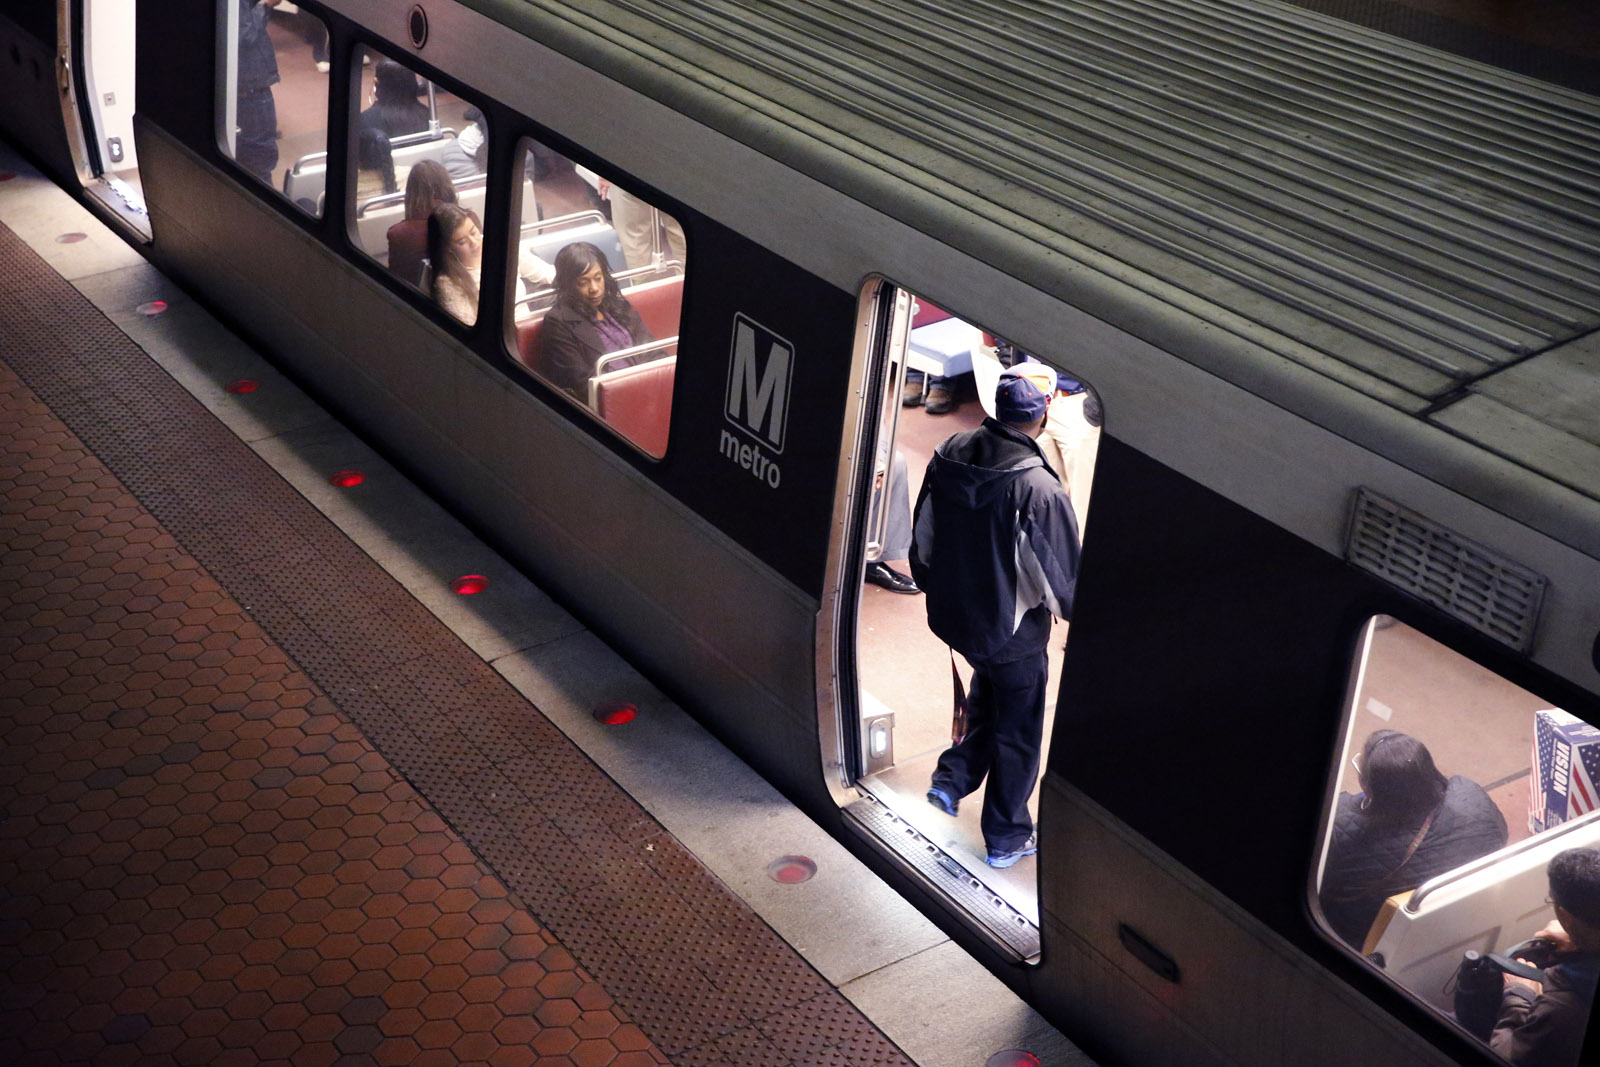 Metro responds to naked man on train, busjacking, delayed sex assault report